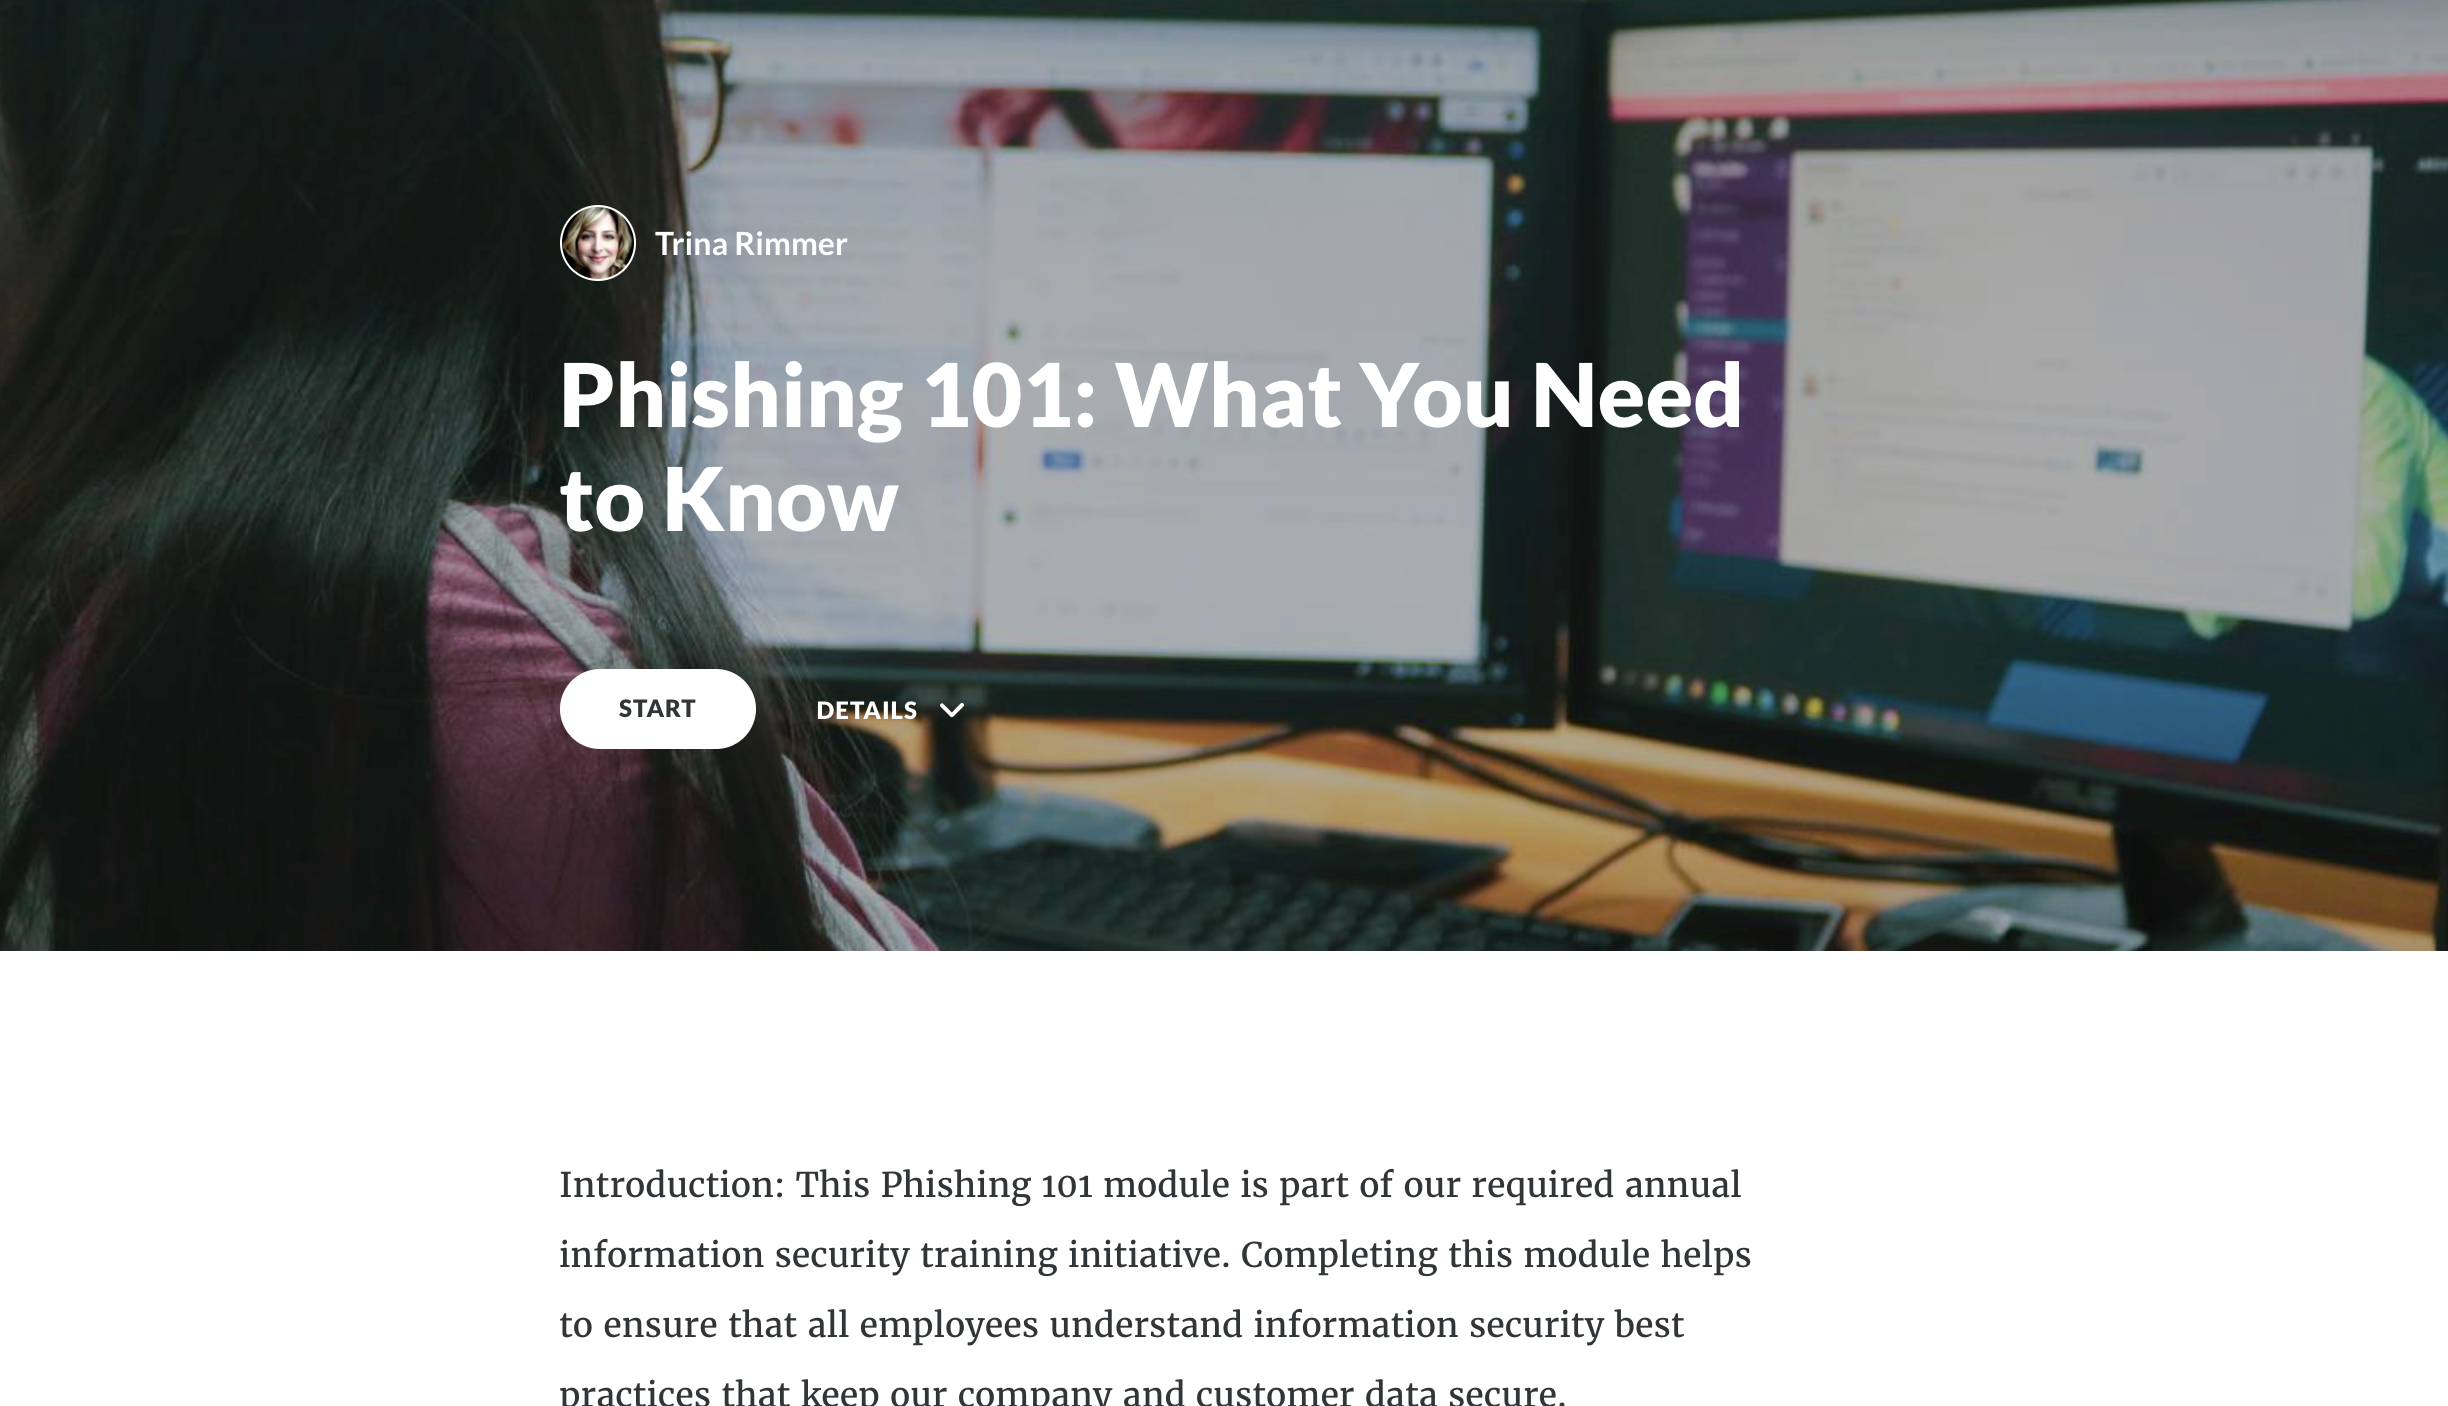 Phishing 101 course